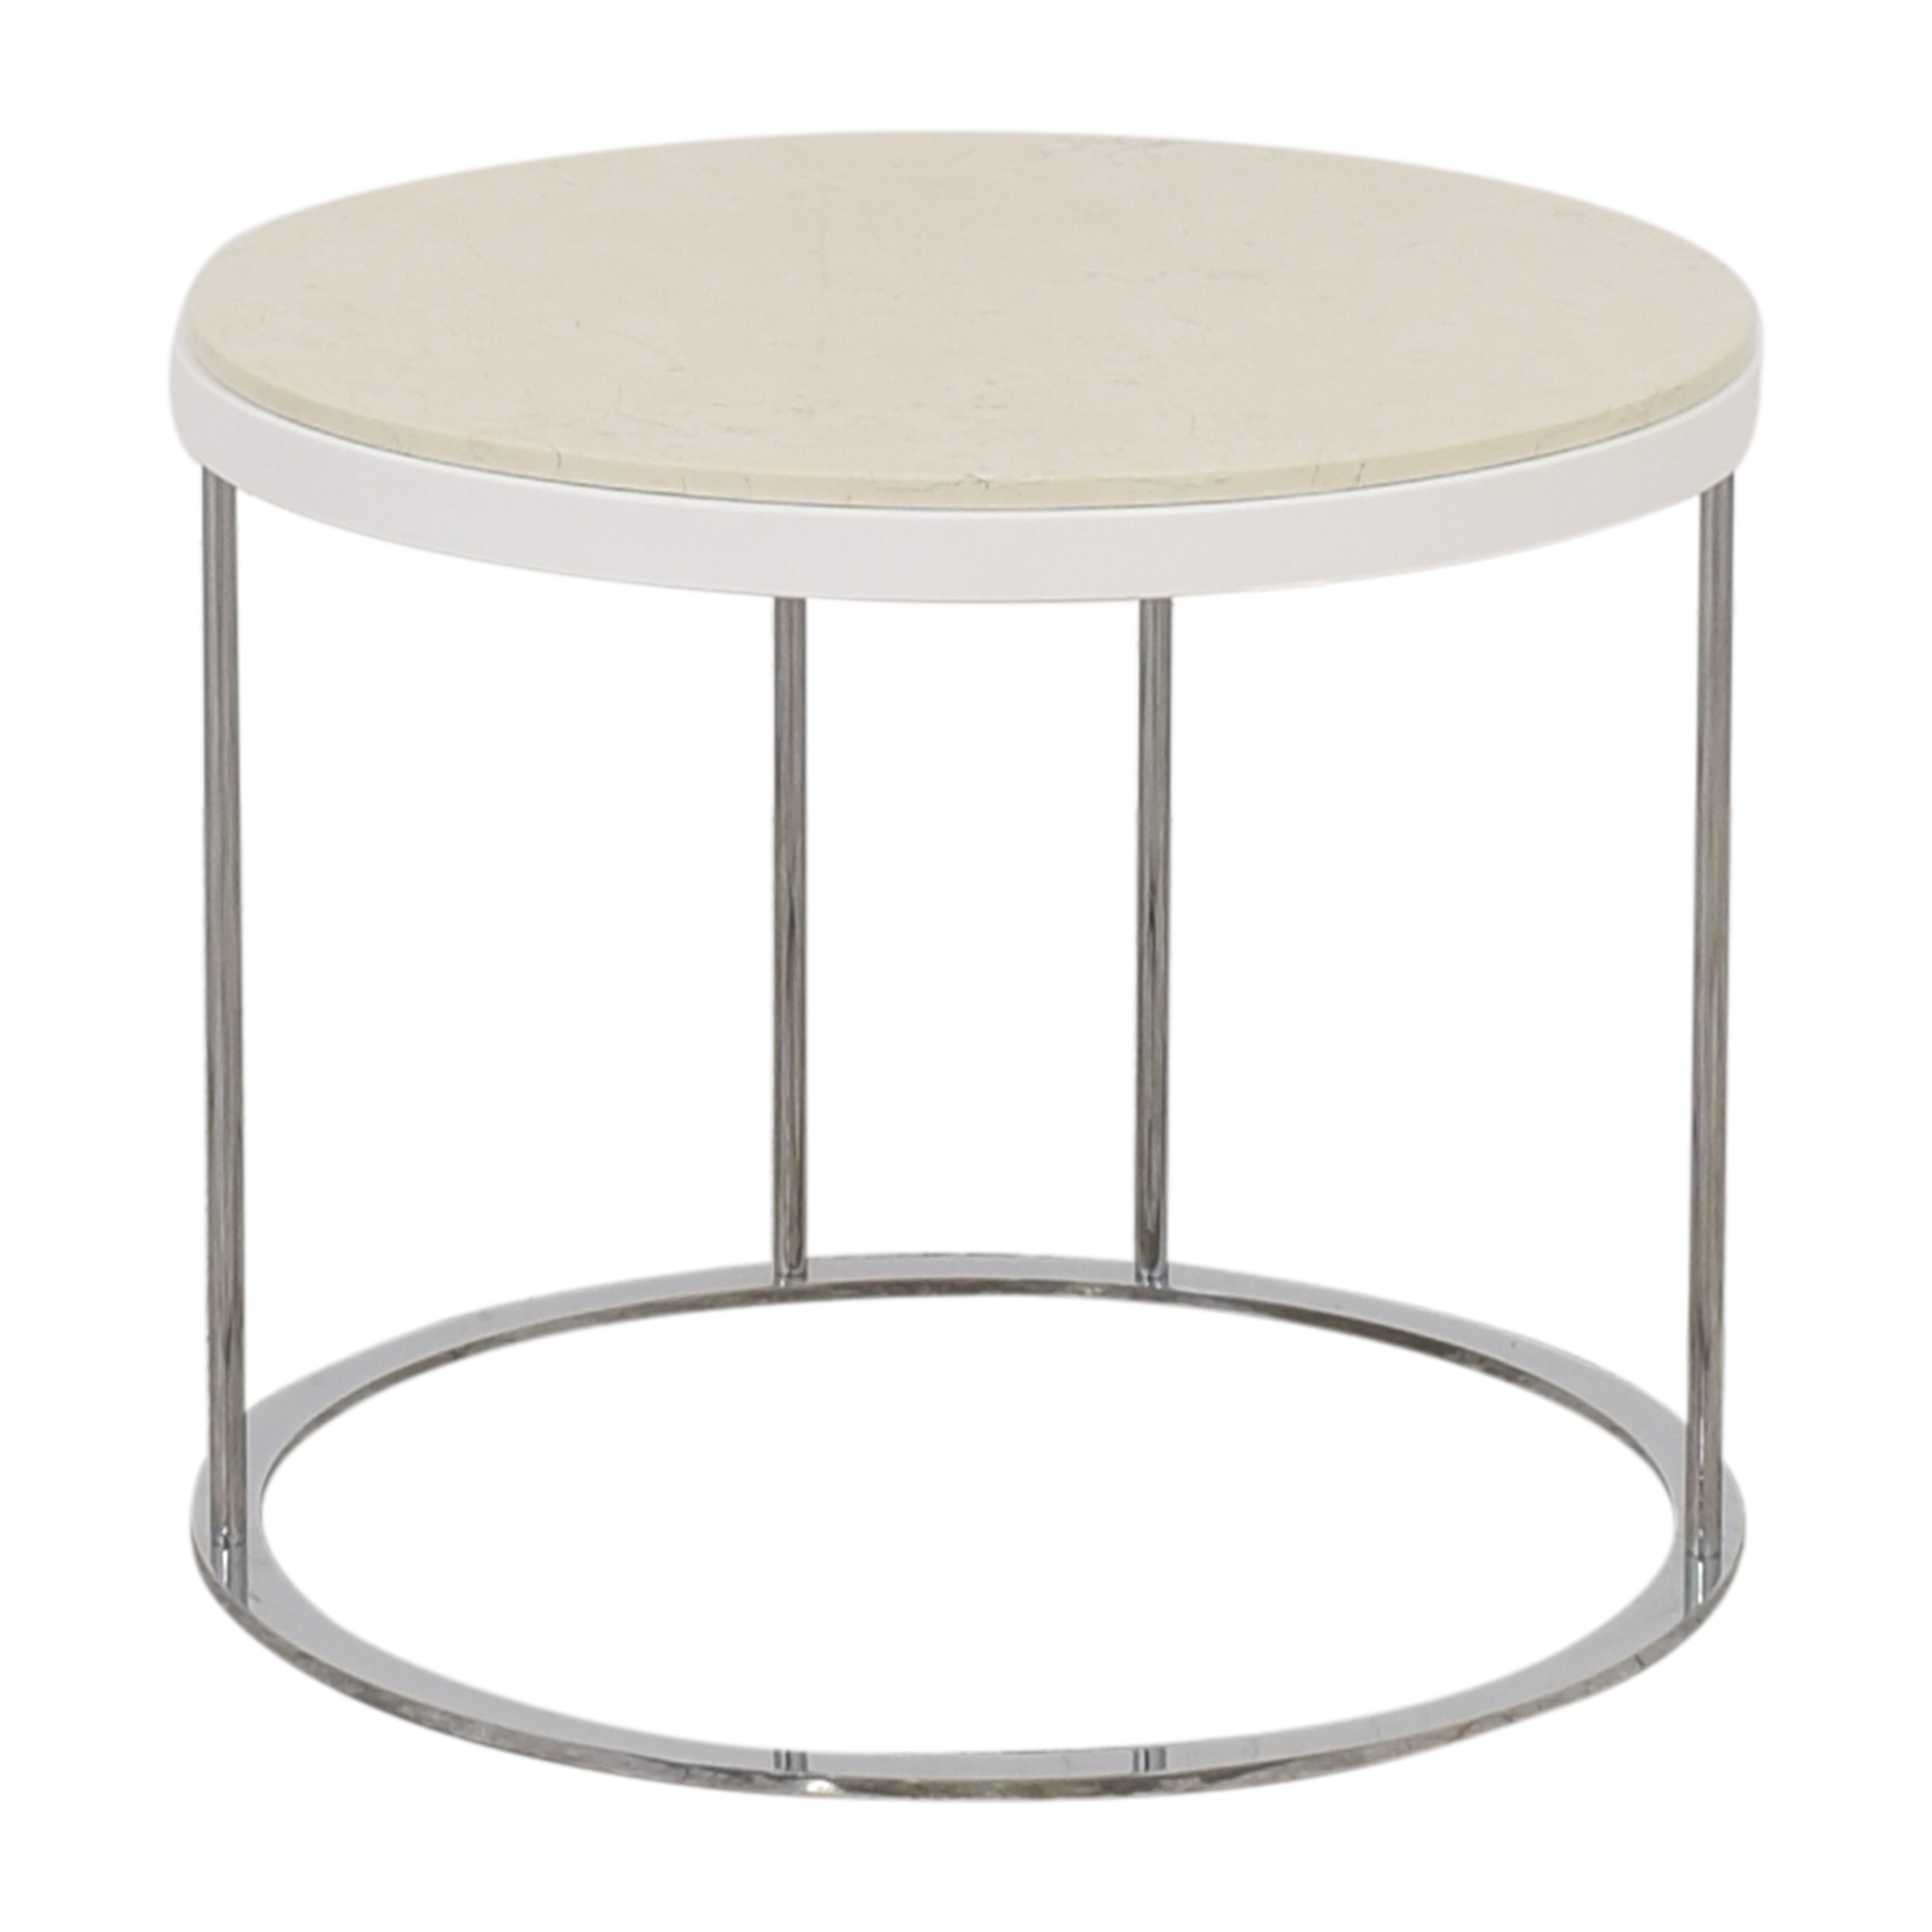 buy Koleksiyon Perrino End Table Koleksiyon